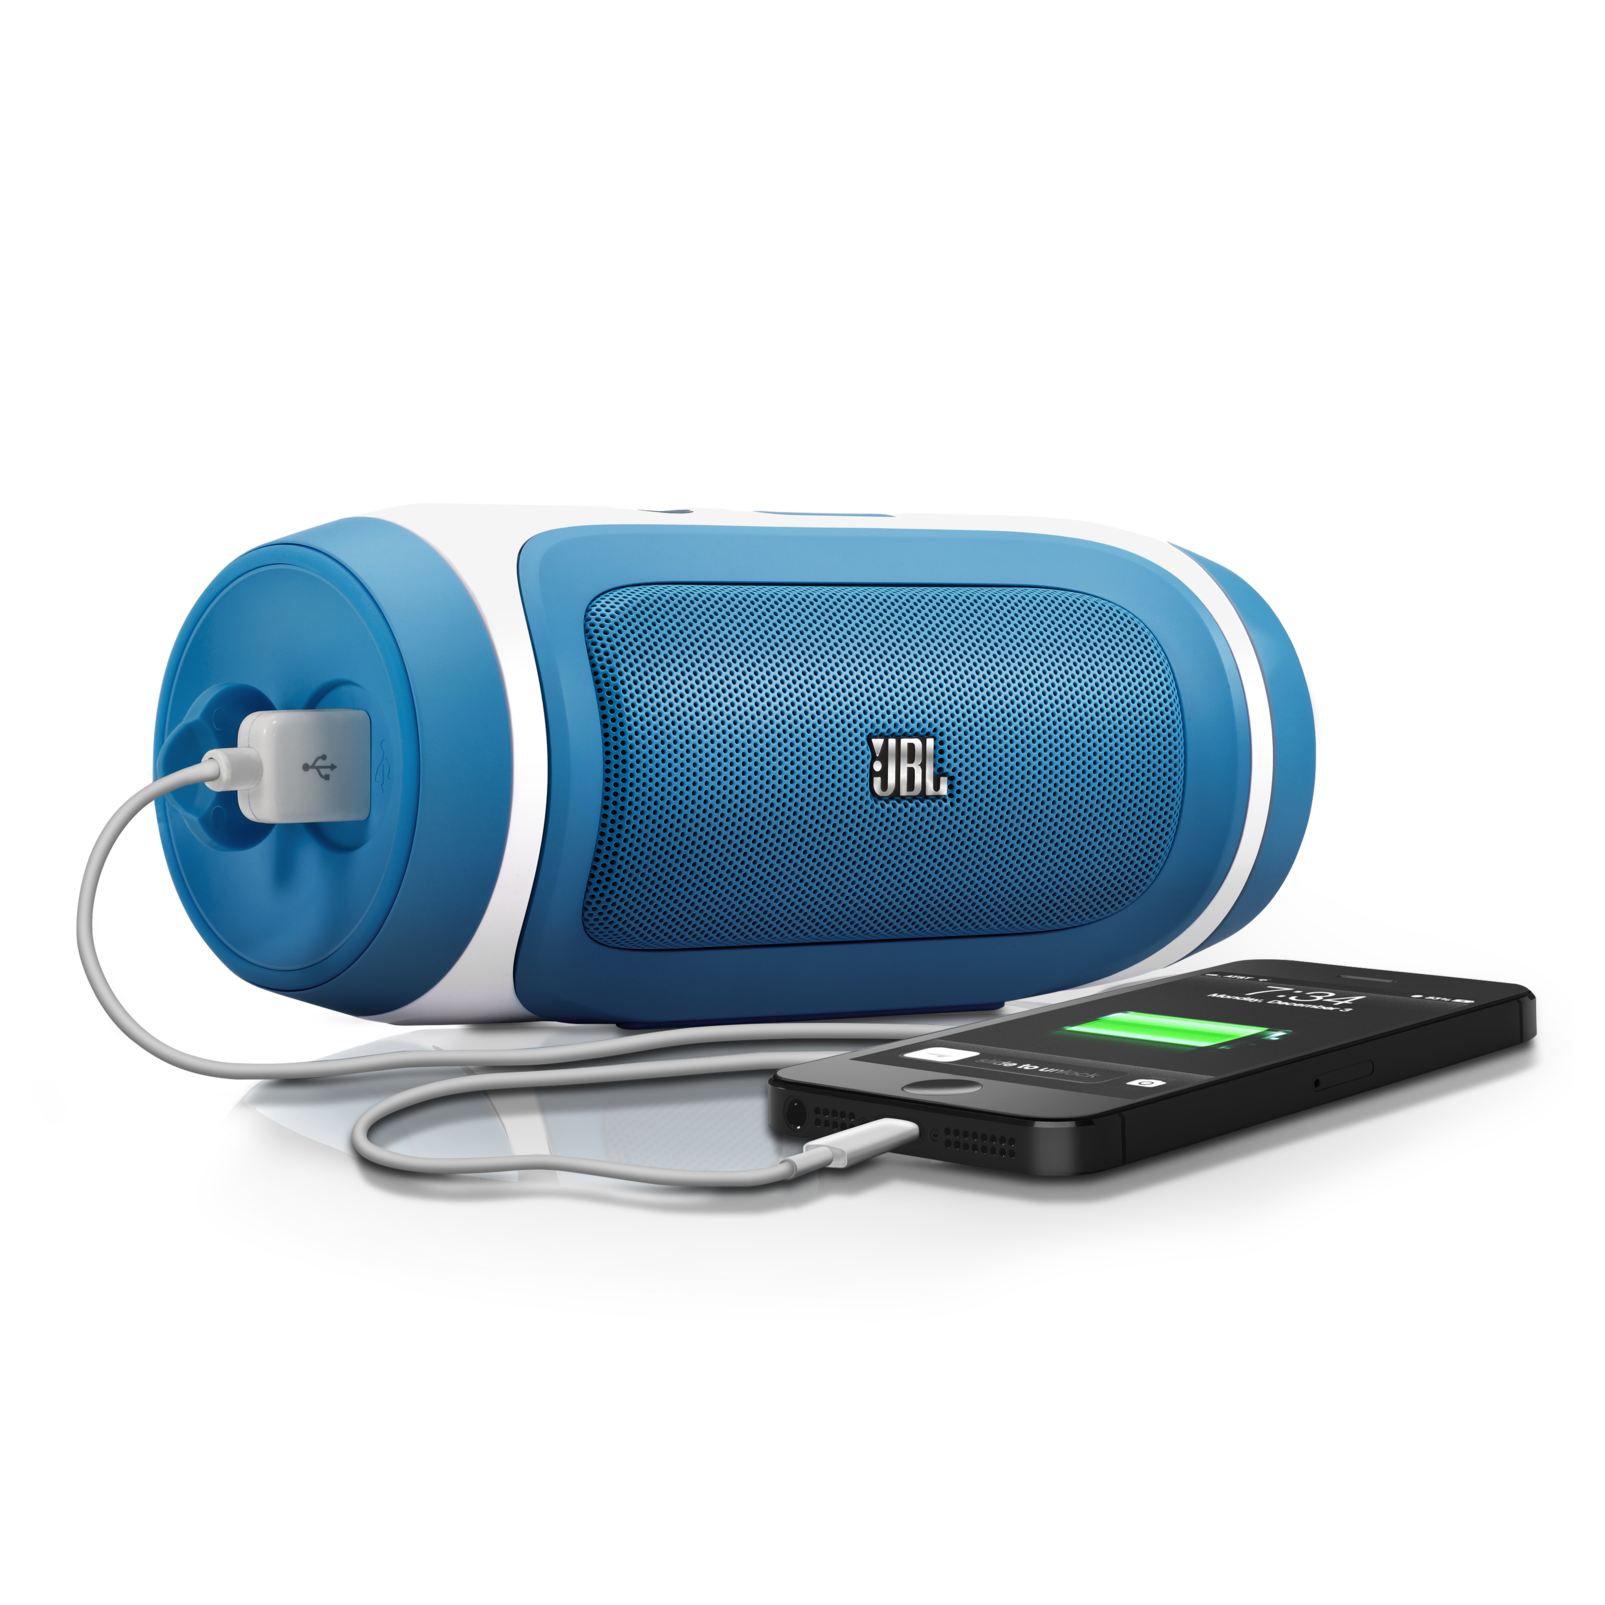 JBL Charge - Blue-Z - Portable Wireless Bluetooth Speaker with USB Charger - Detailshot 1